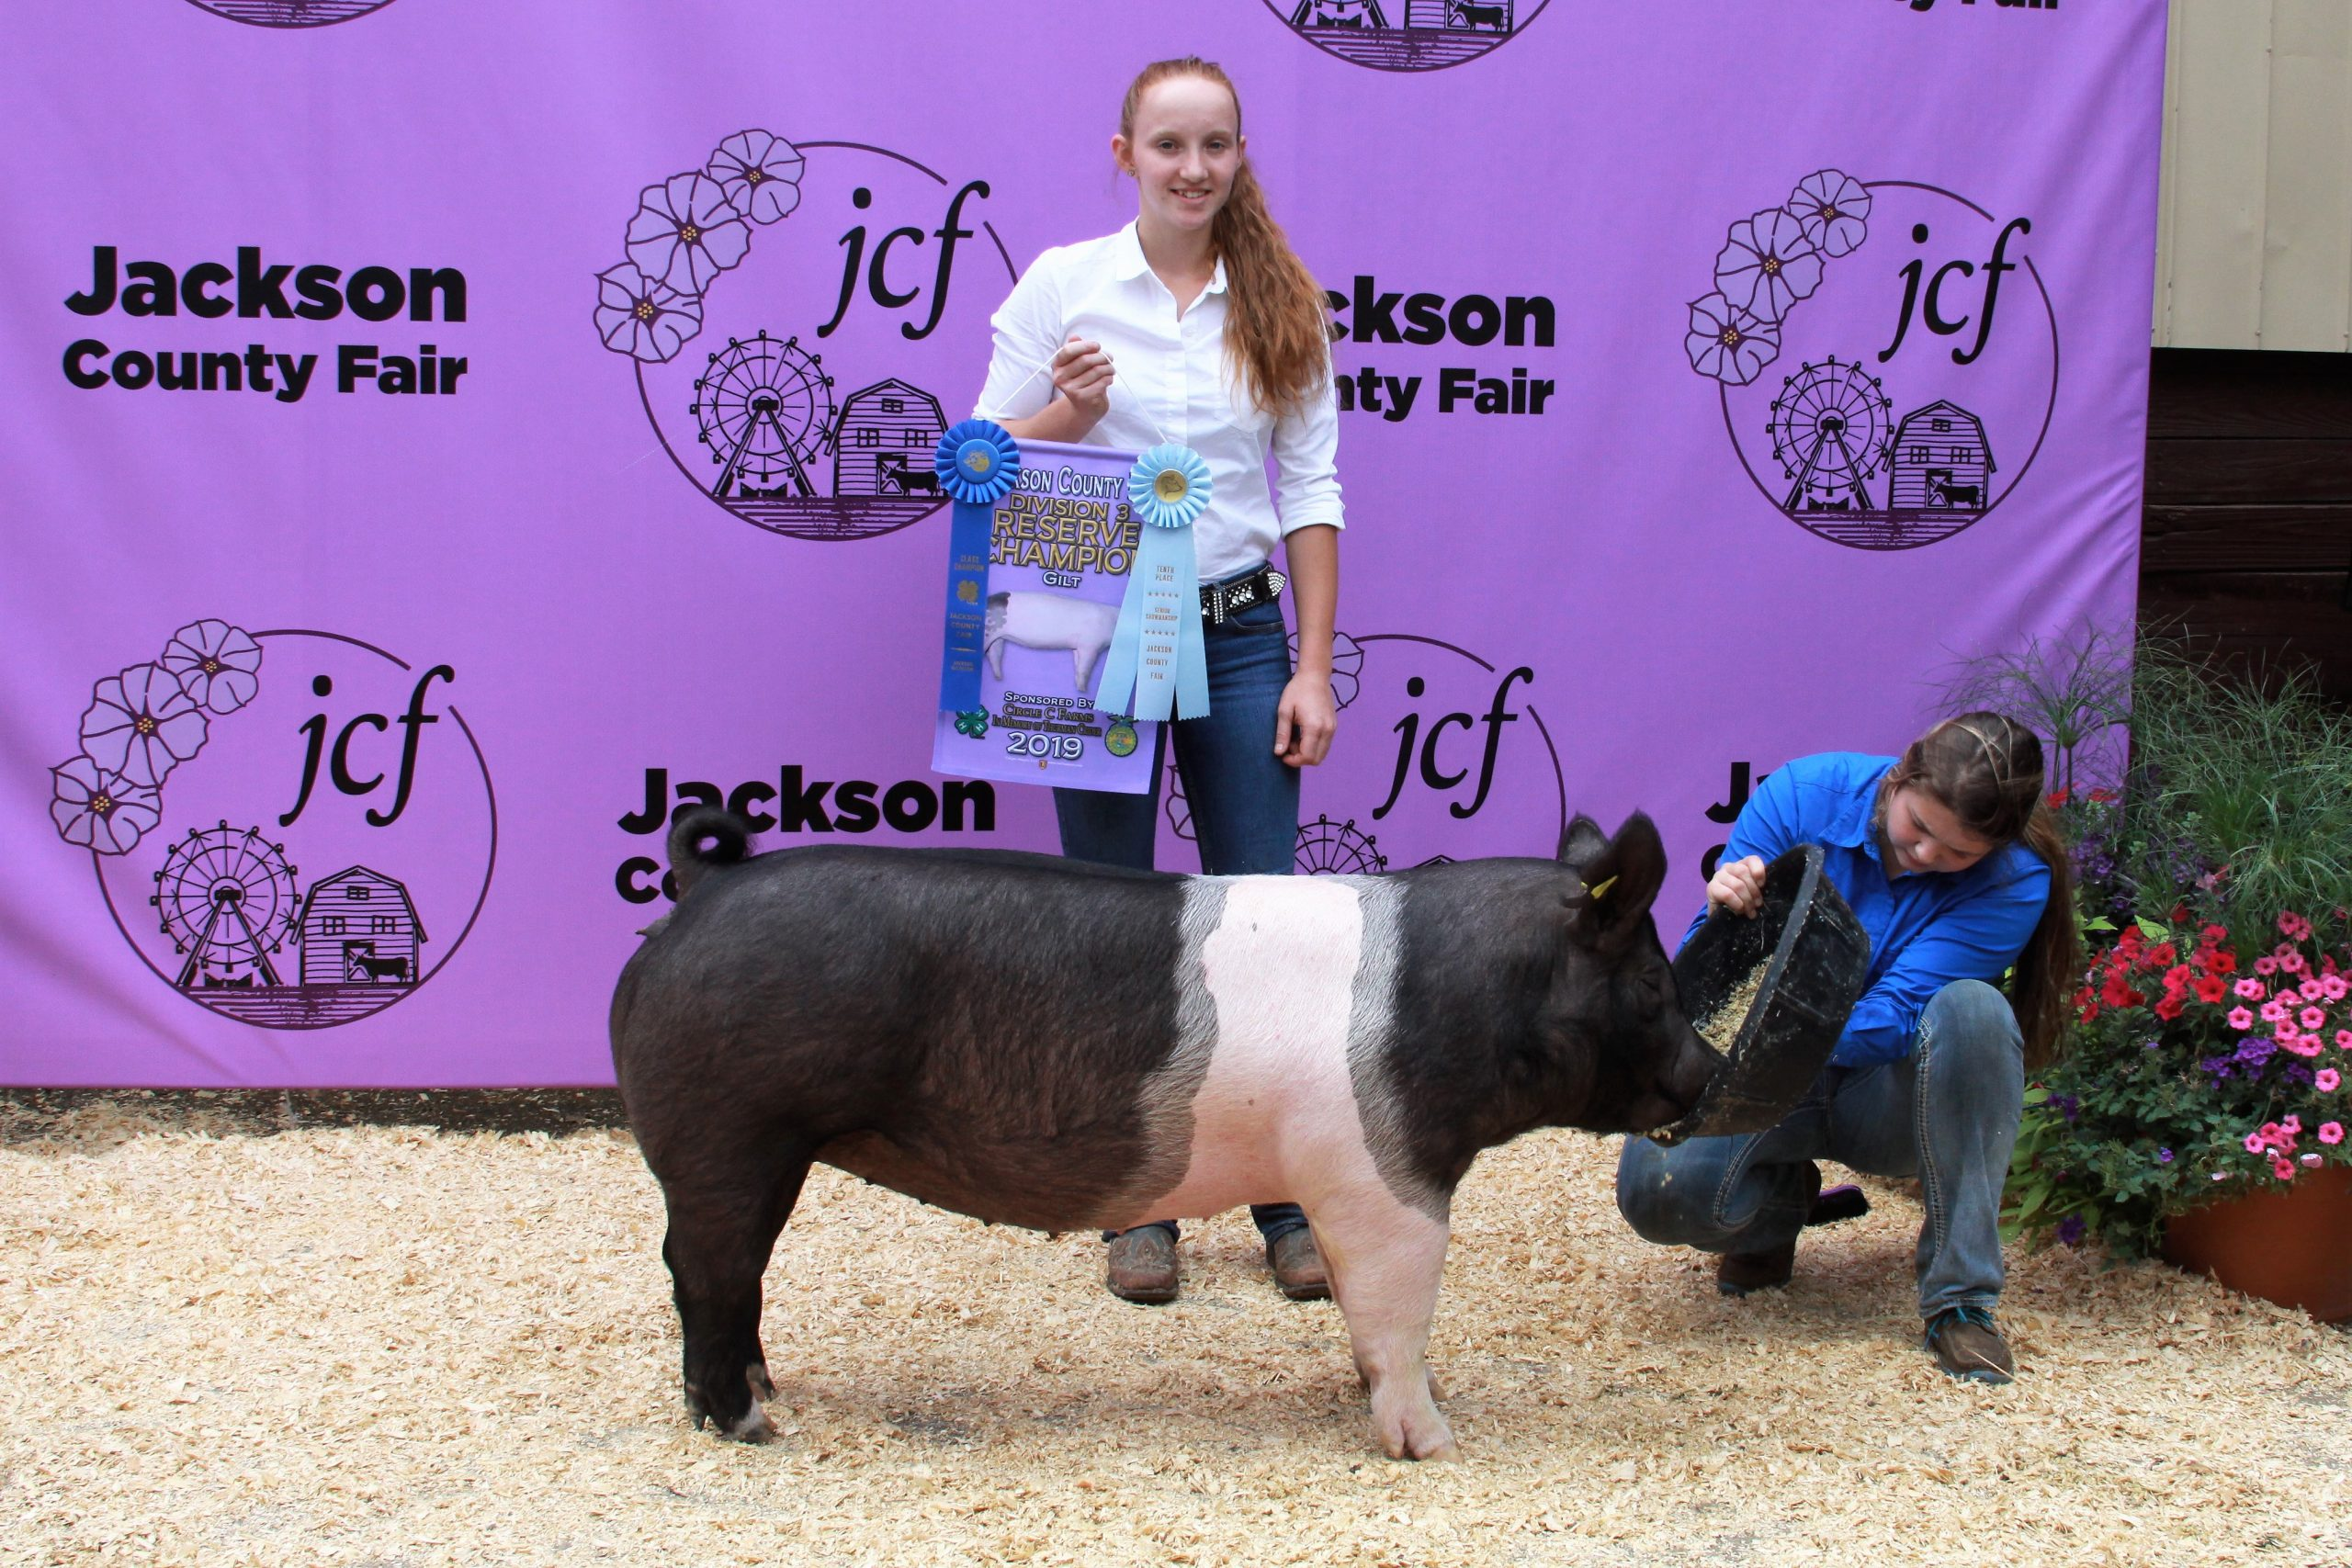 2019 Jackson County Fair, Division 3 Reserve Champion Gilt, Sired by Tyrant